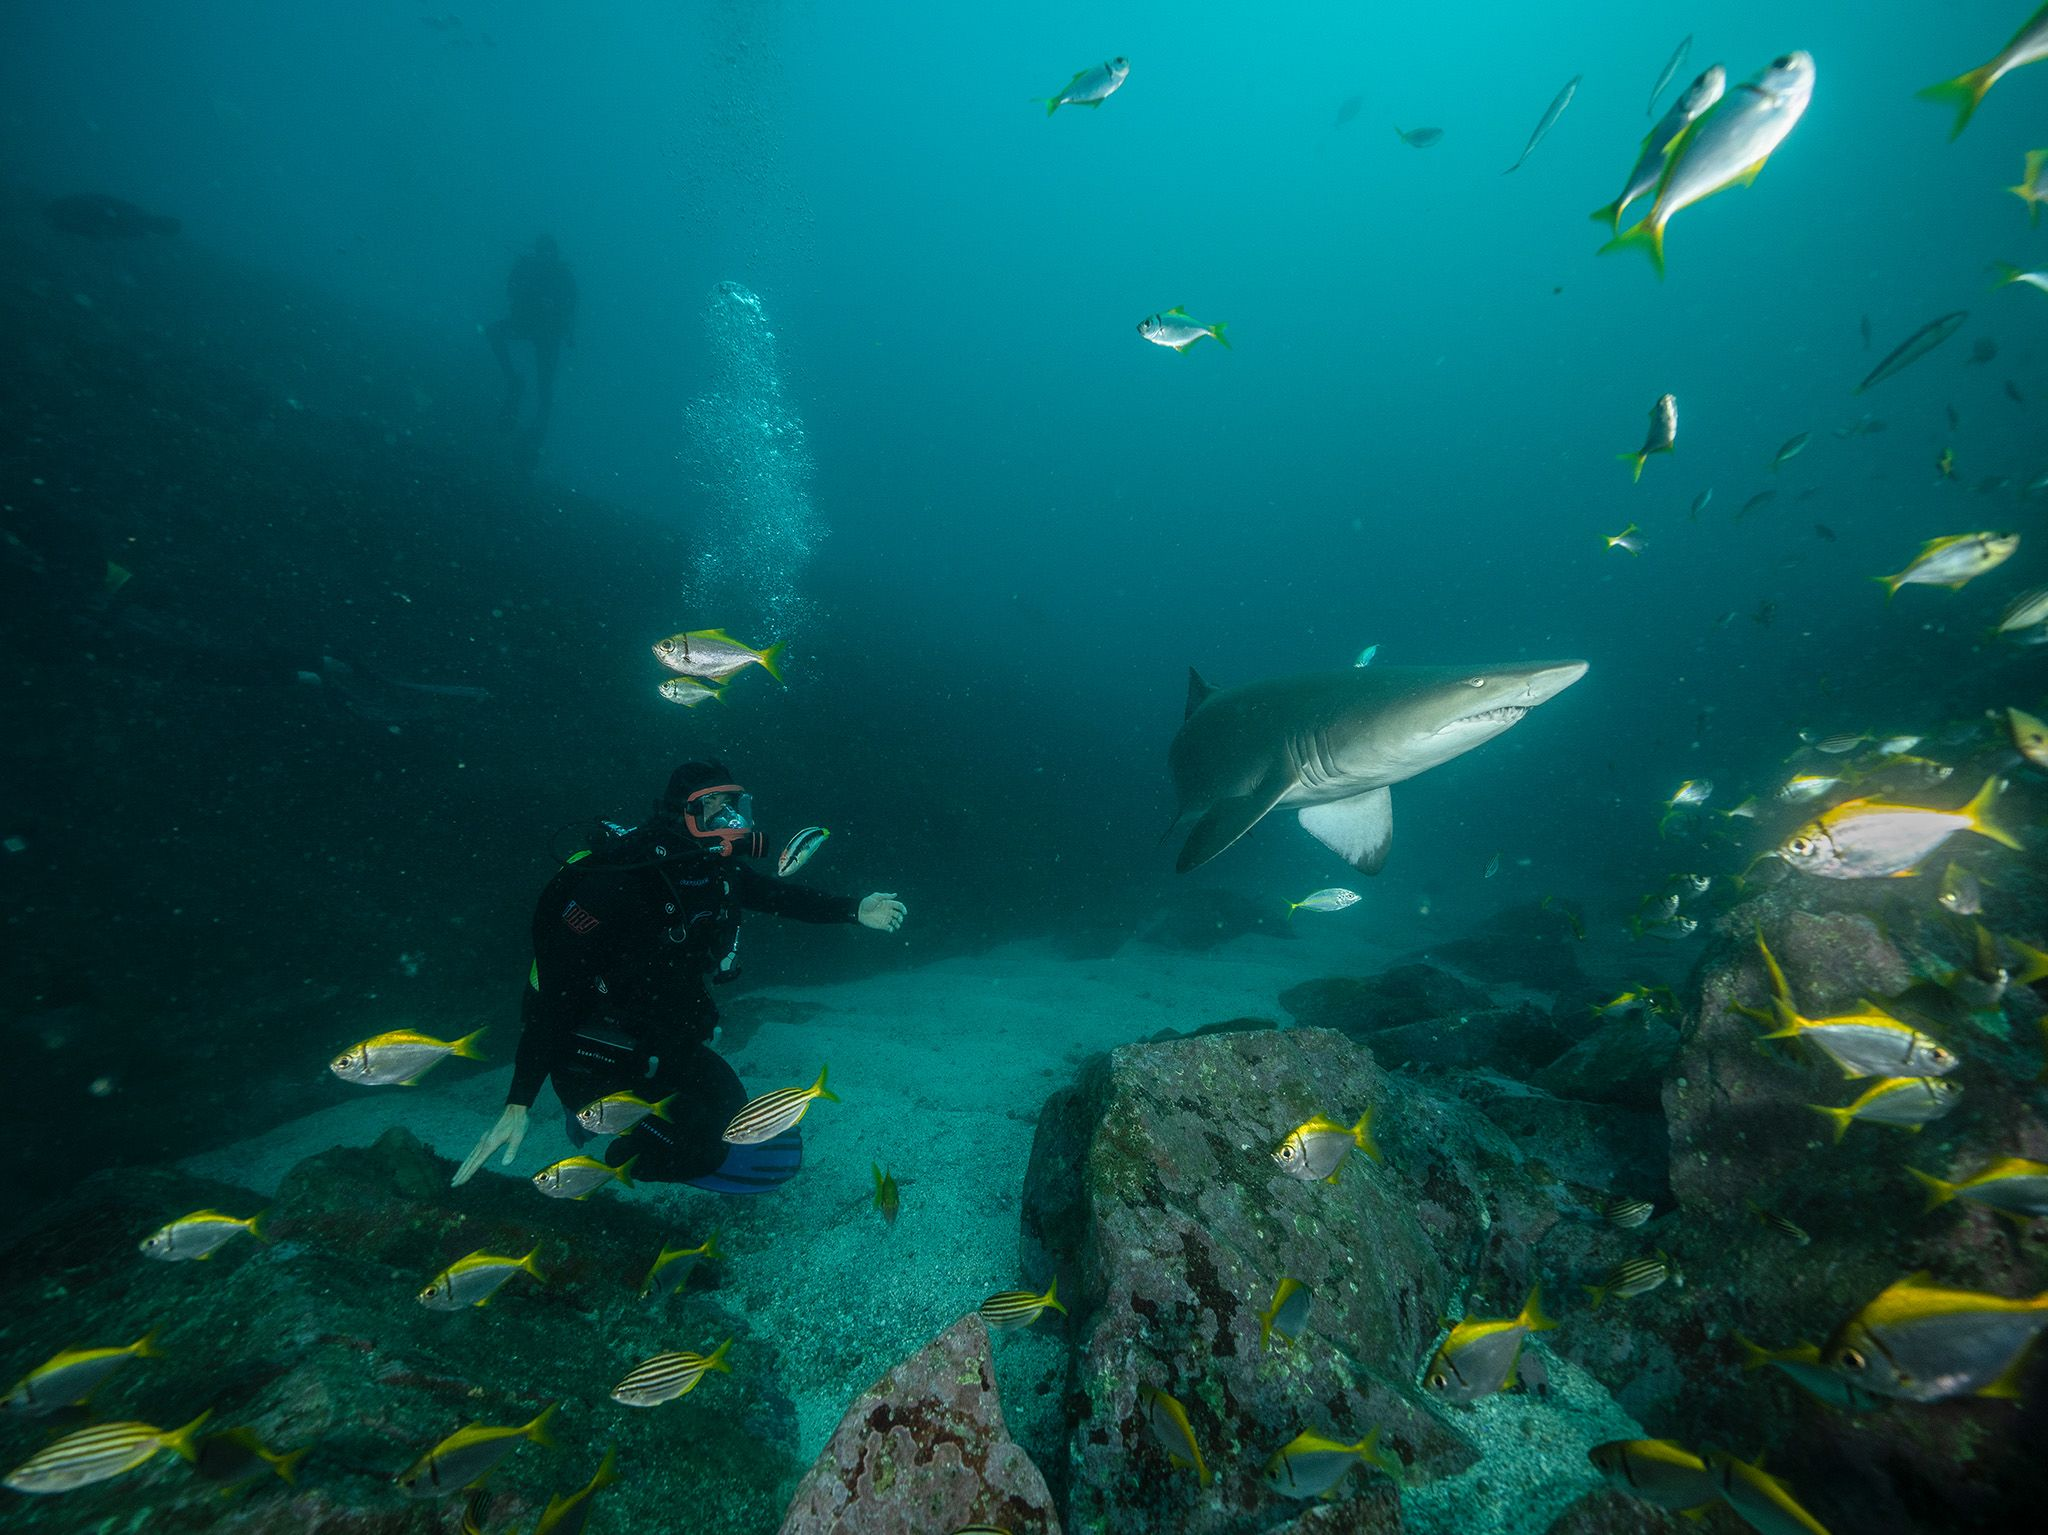 Chris Hemsworth diving at Fish Rock, South West Rocks. This is part of Shark Beach with Chris... [Photo of the day - July 2021]